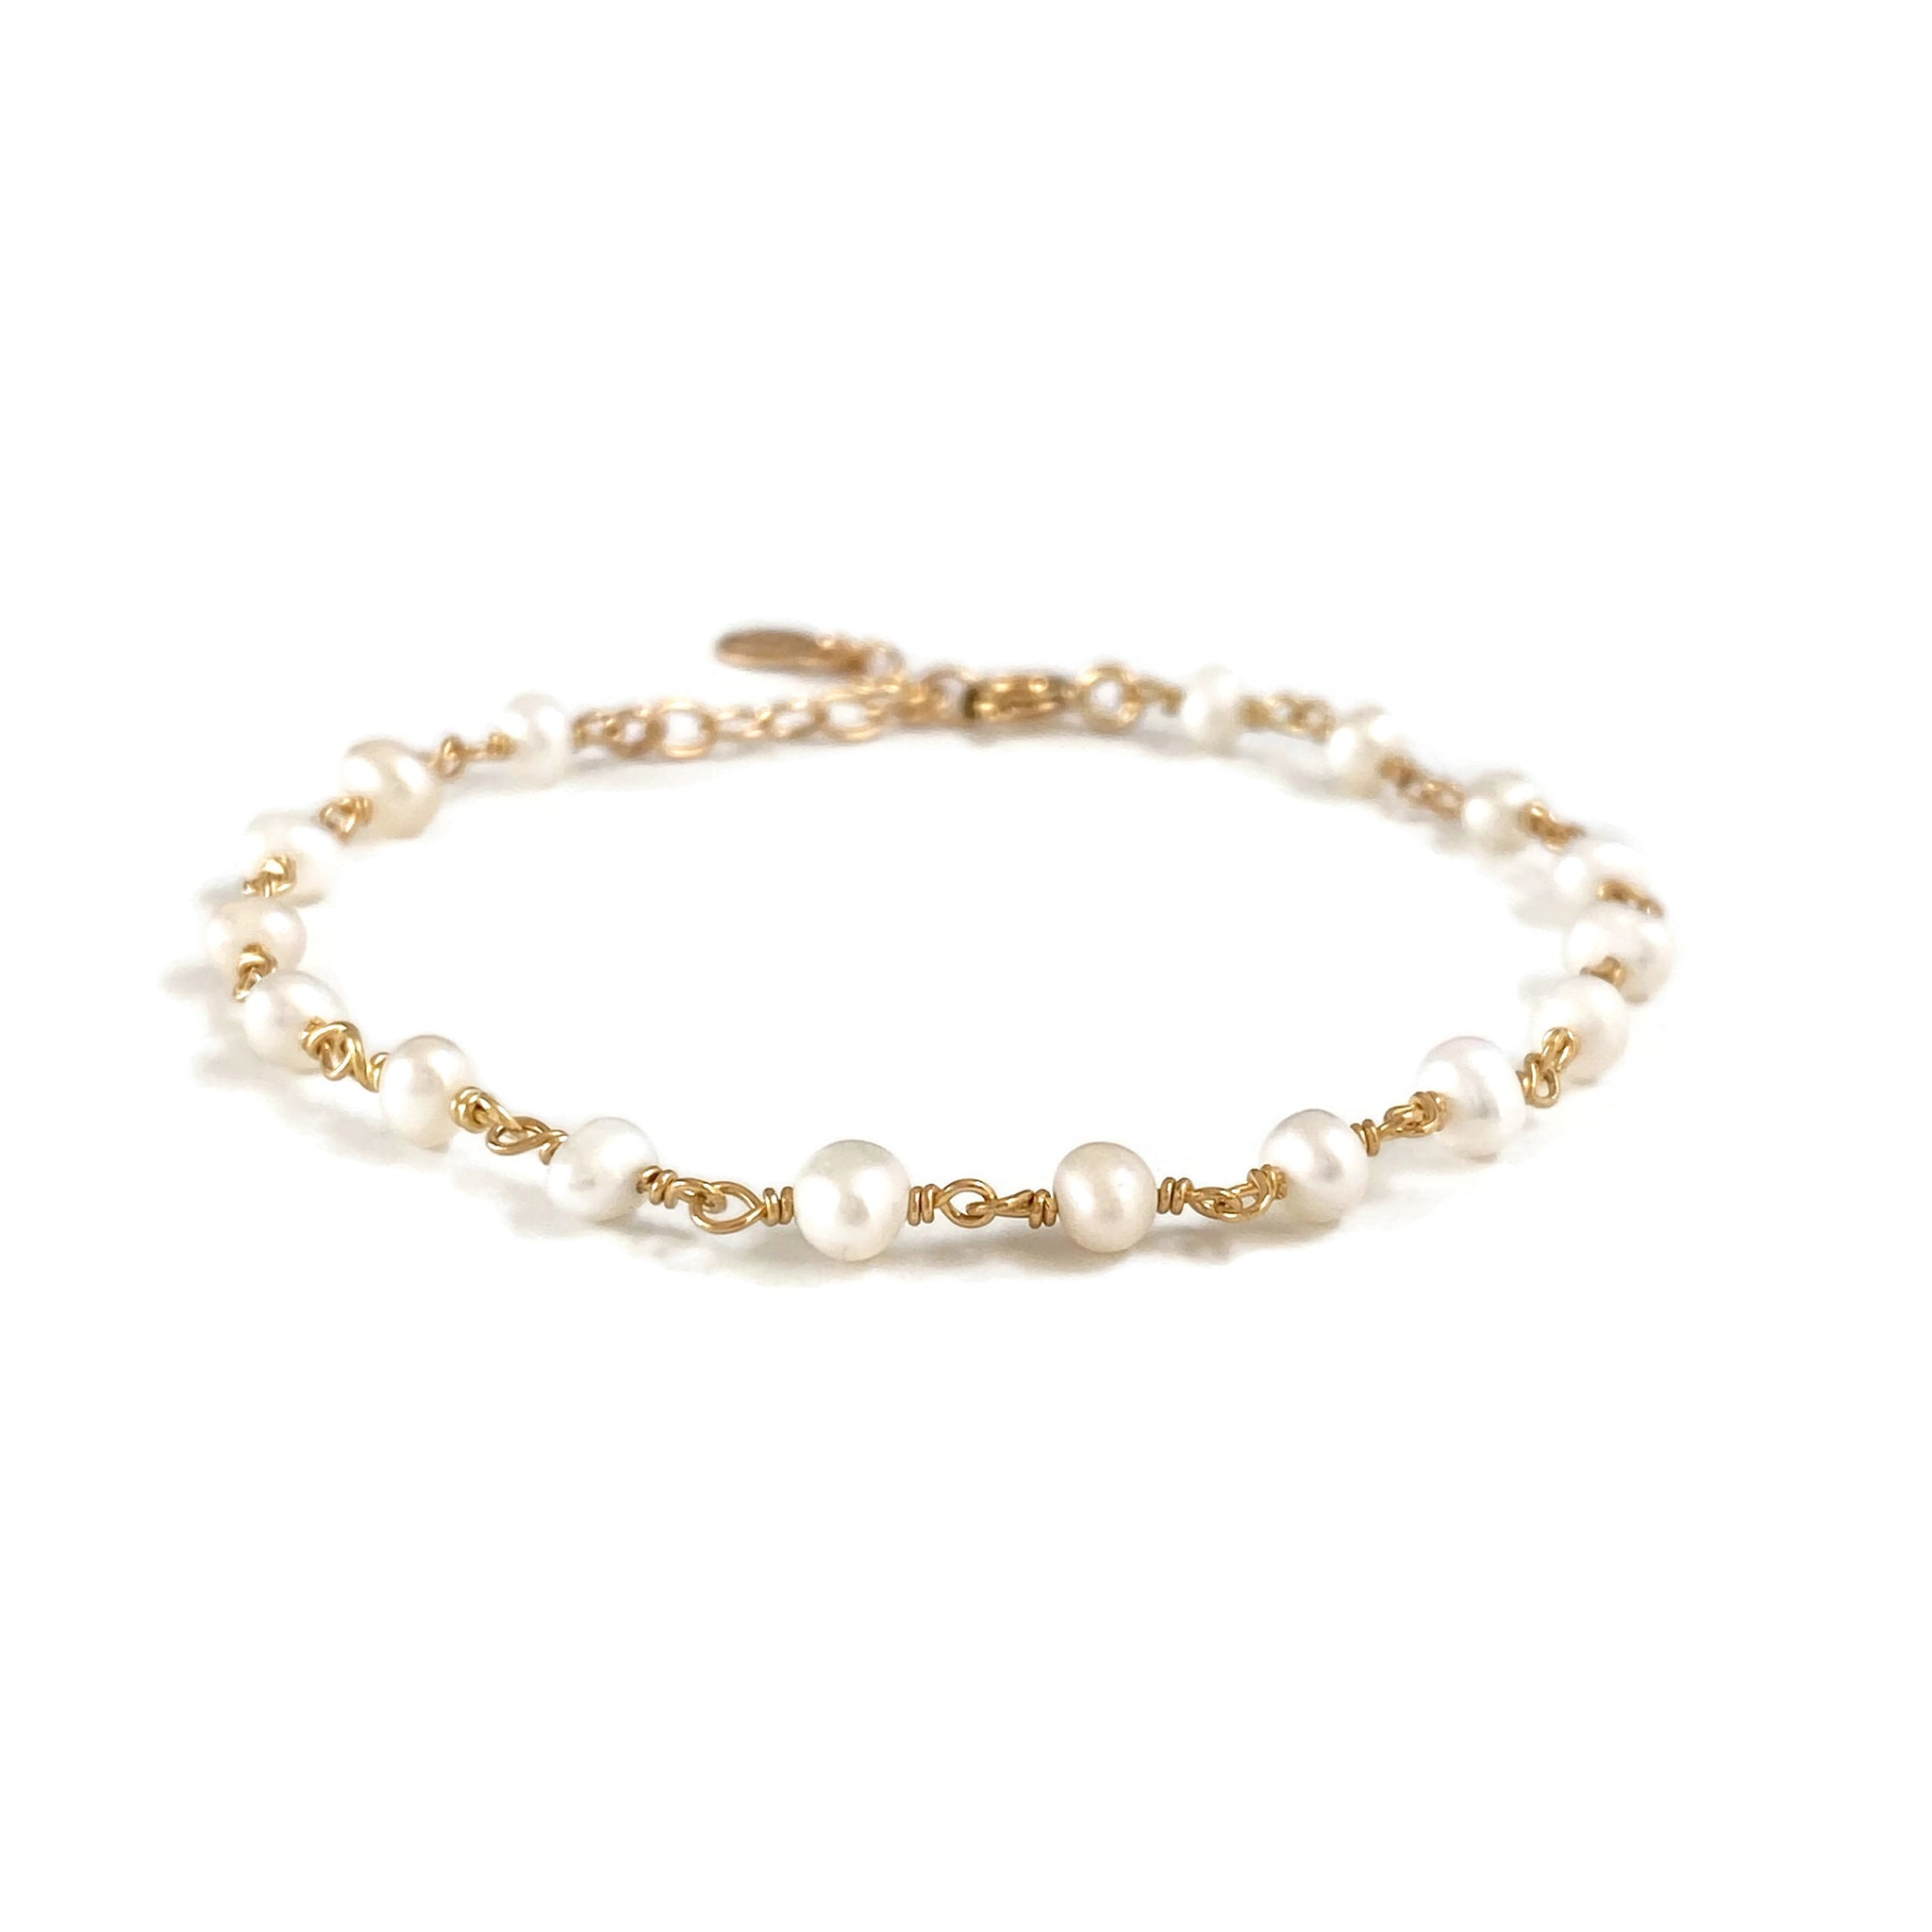 Fresh water pearl bracelet is popular as a wedding day bracelet.